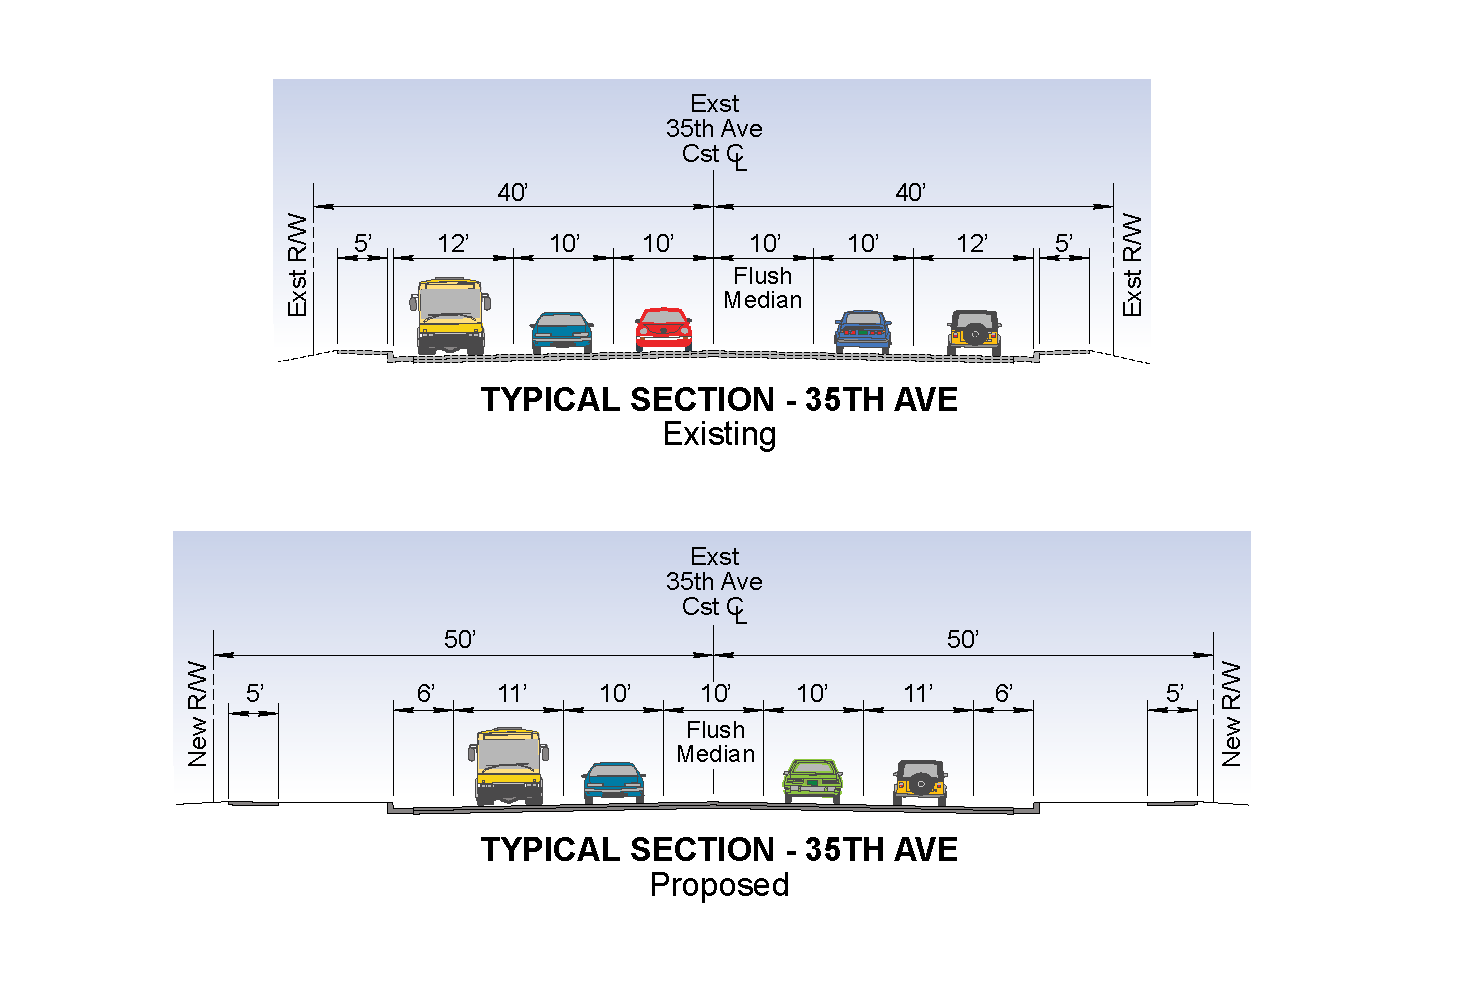 Existing and proposed cross-section diagrams